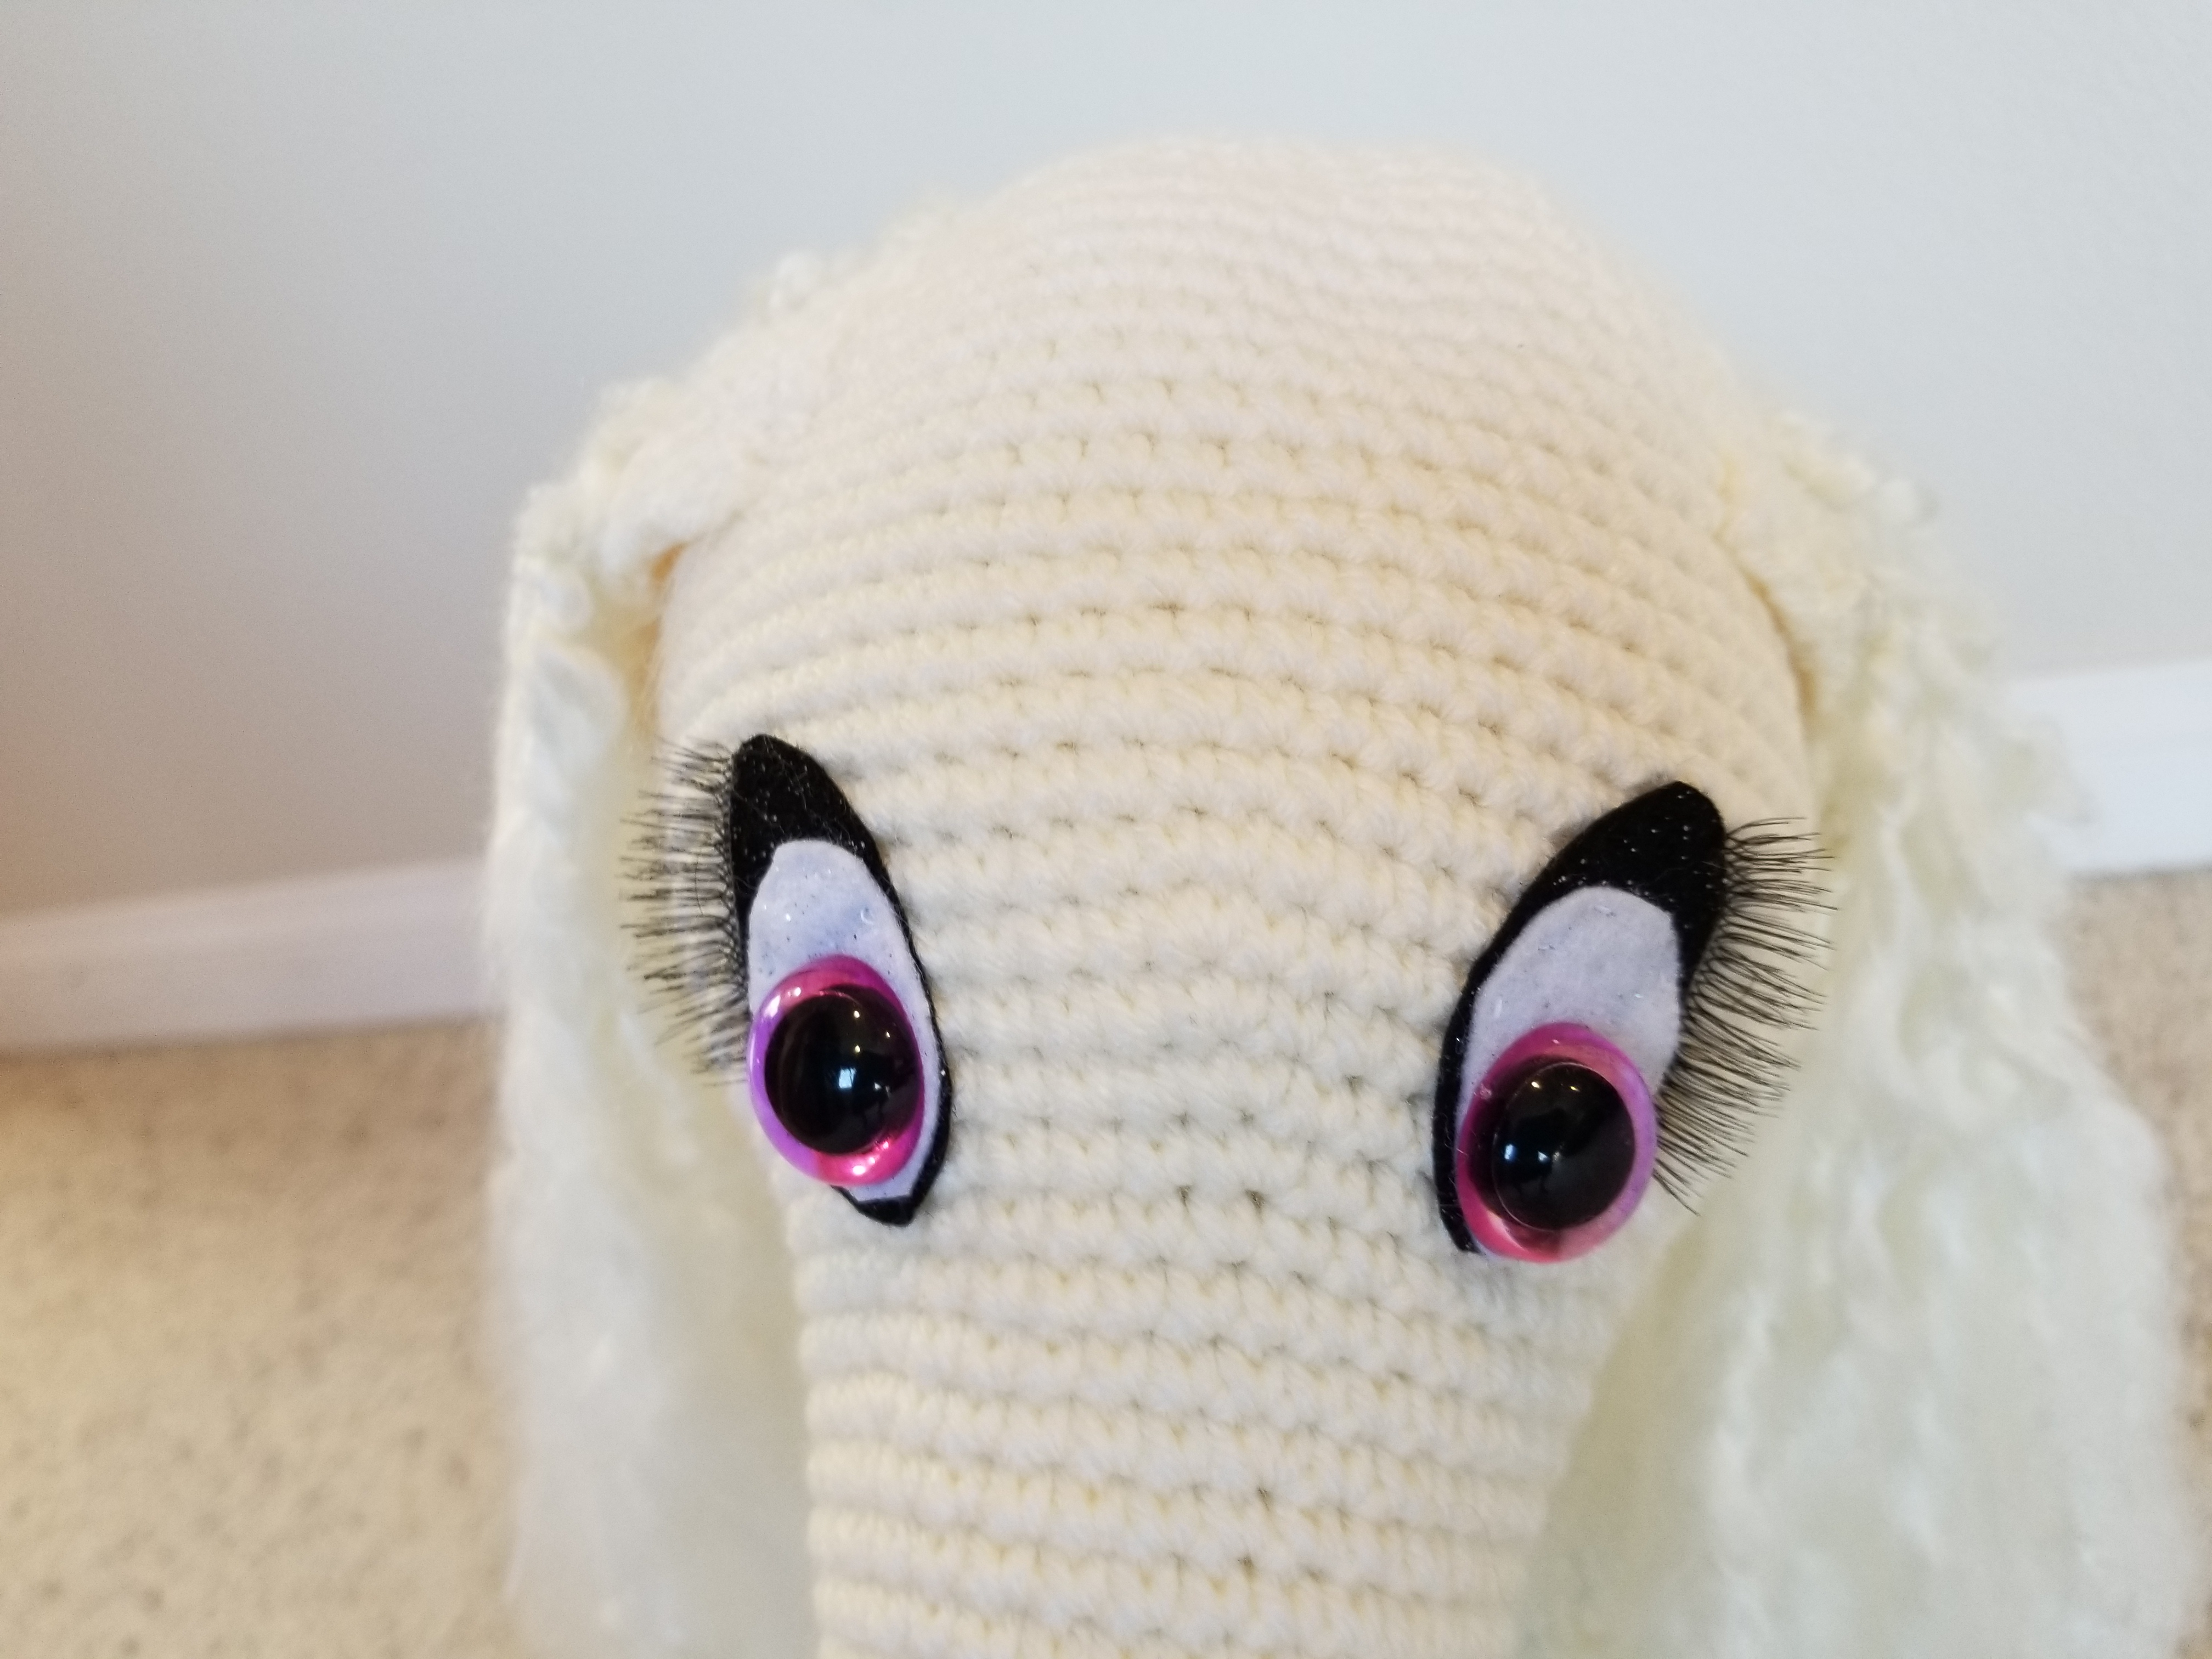 Placing safety eyes in amigurumi projects - YouTube | 3024x4032